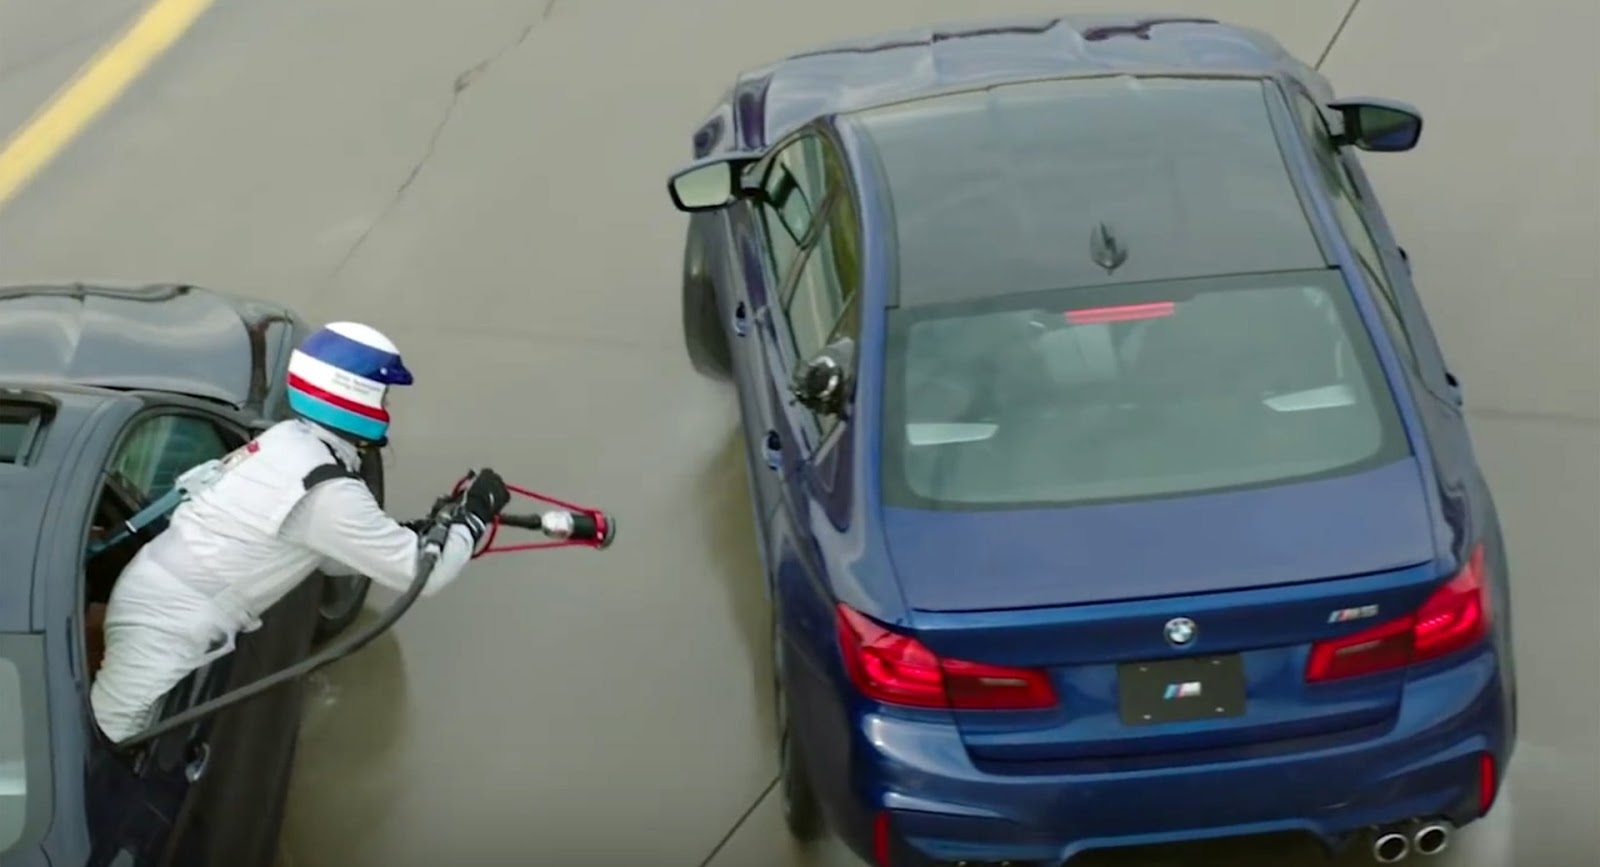 Watch This BMW Refuel While Drifting In Tandem